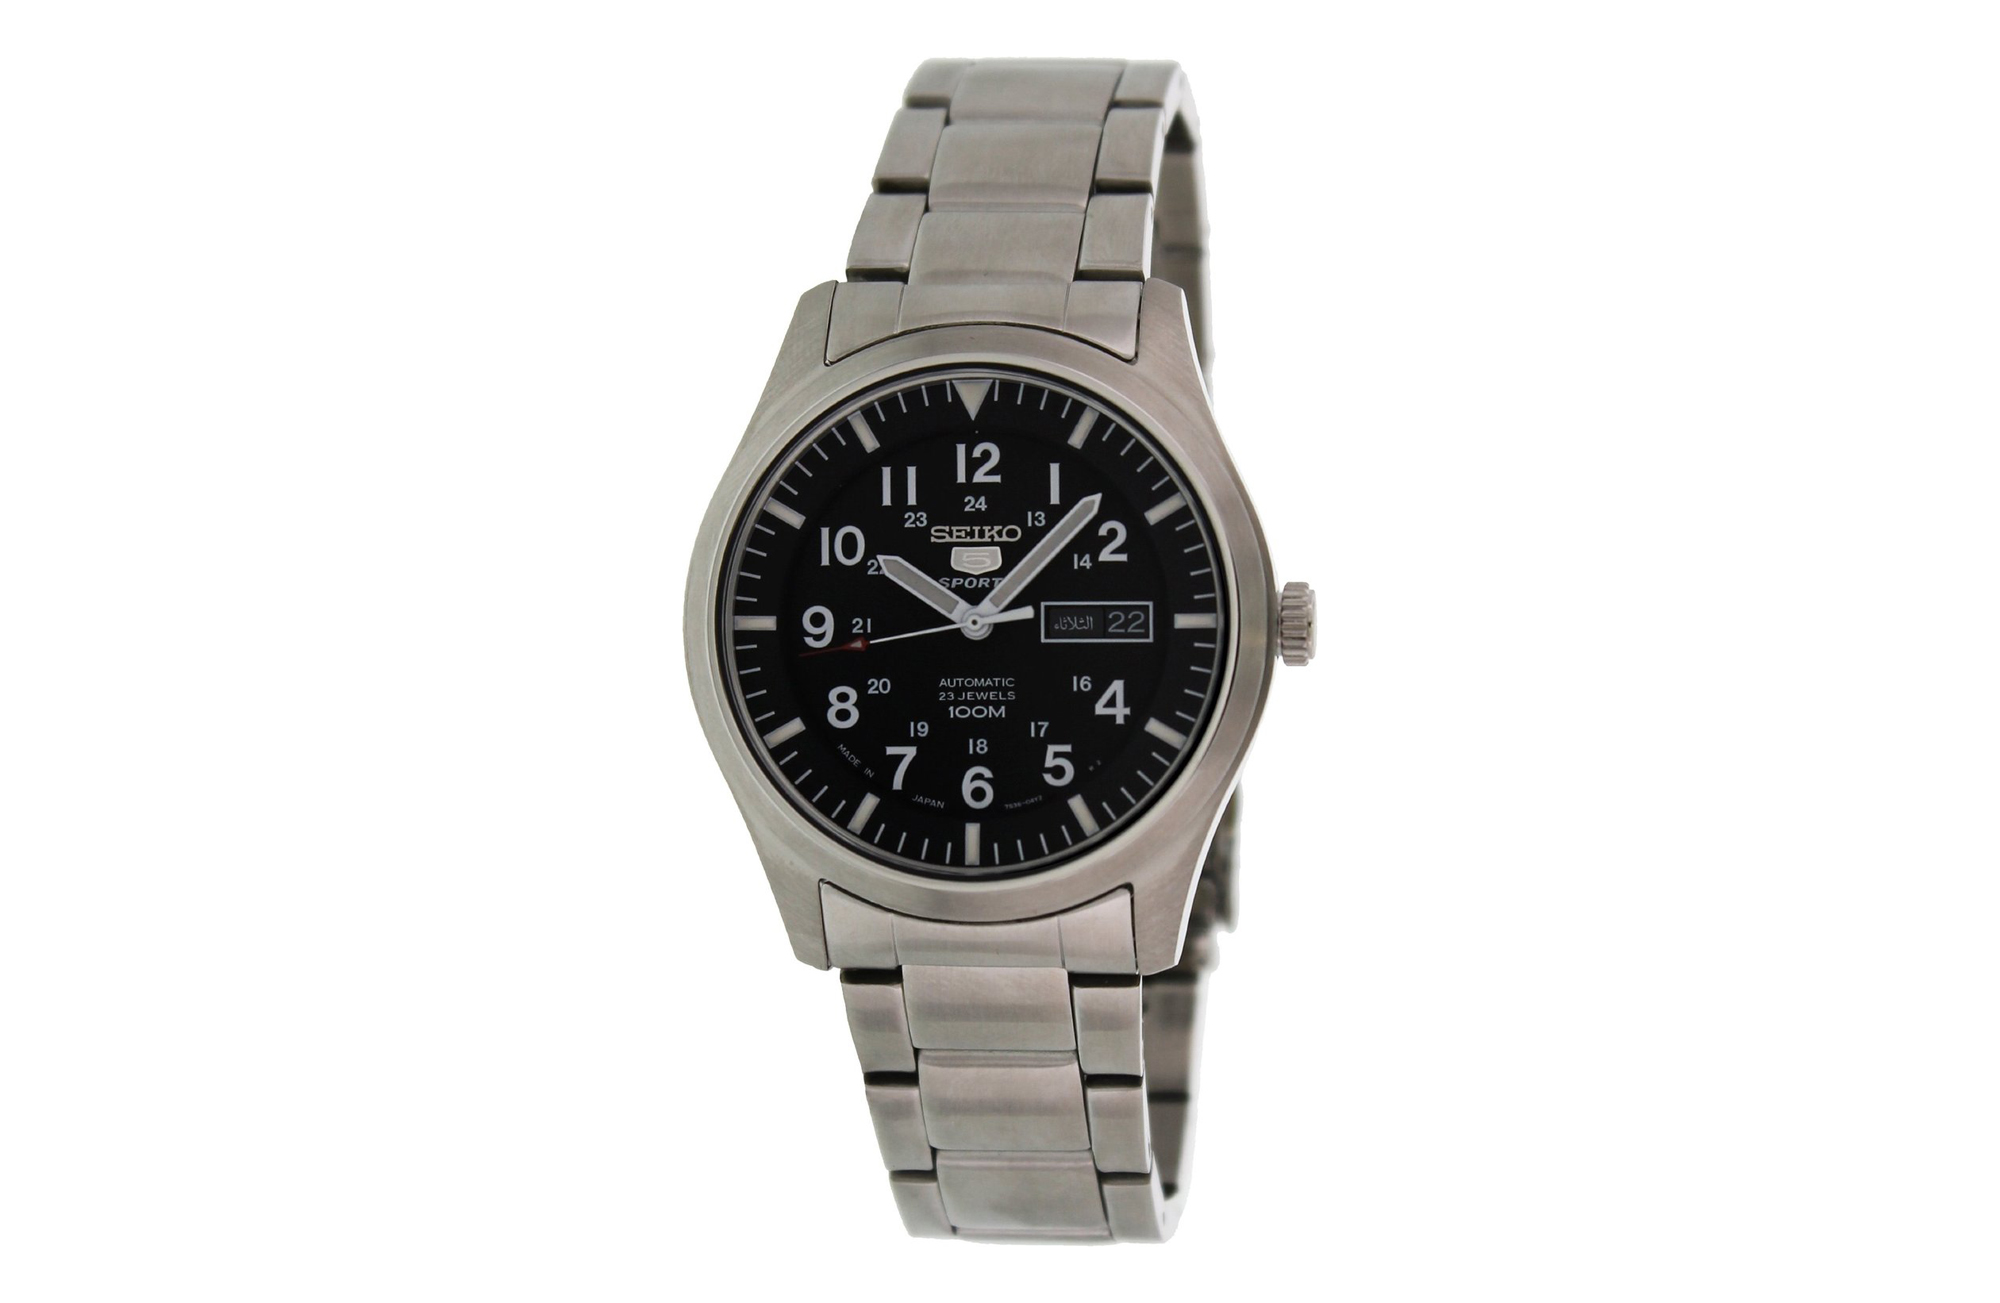 Seiko 5 Automatic Black Dial Stainless Steel Watch